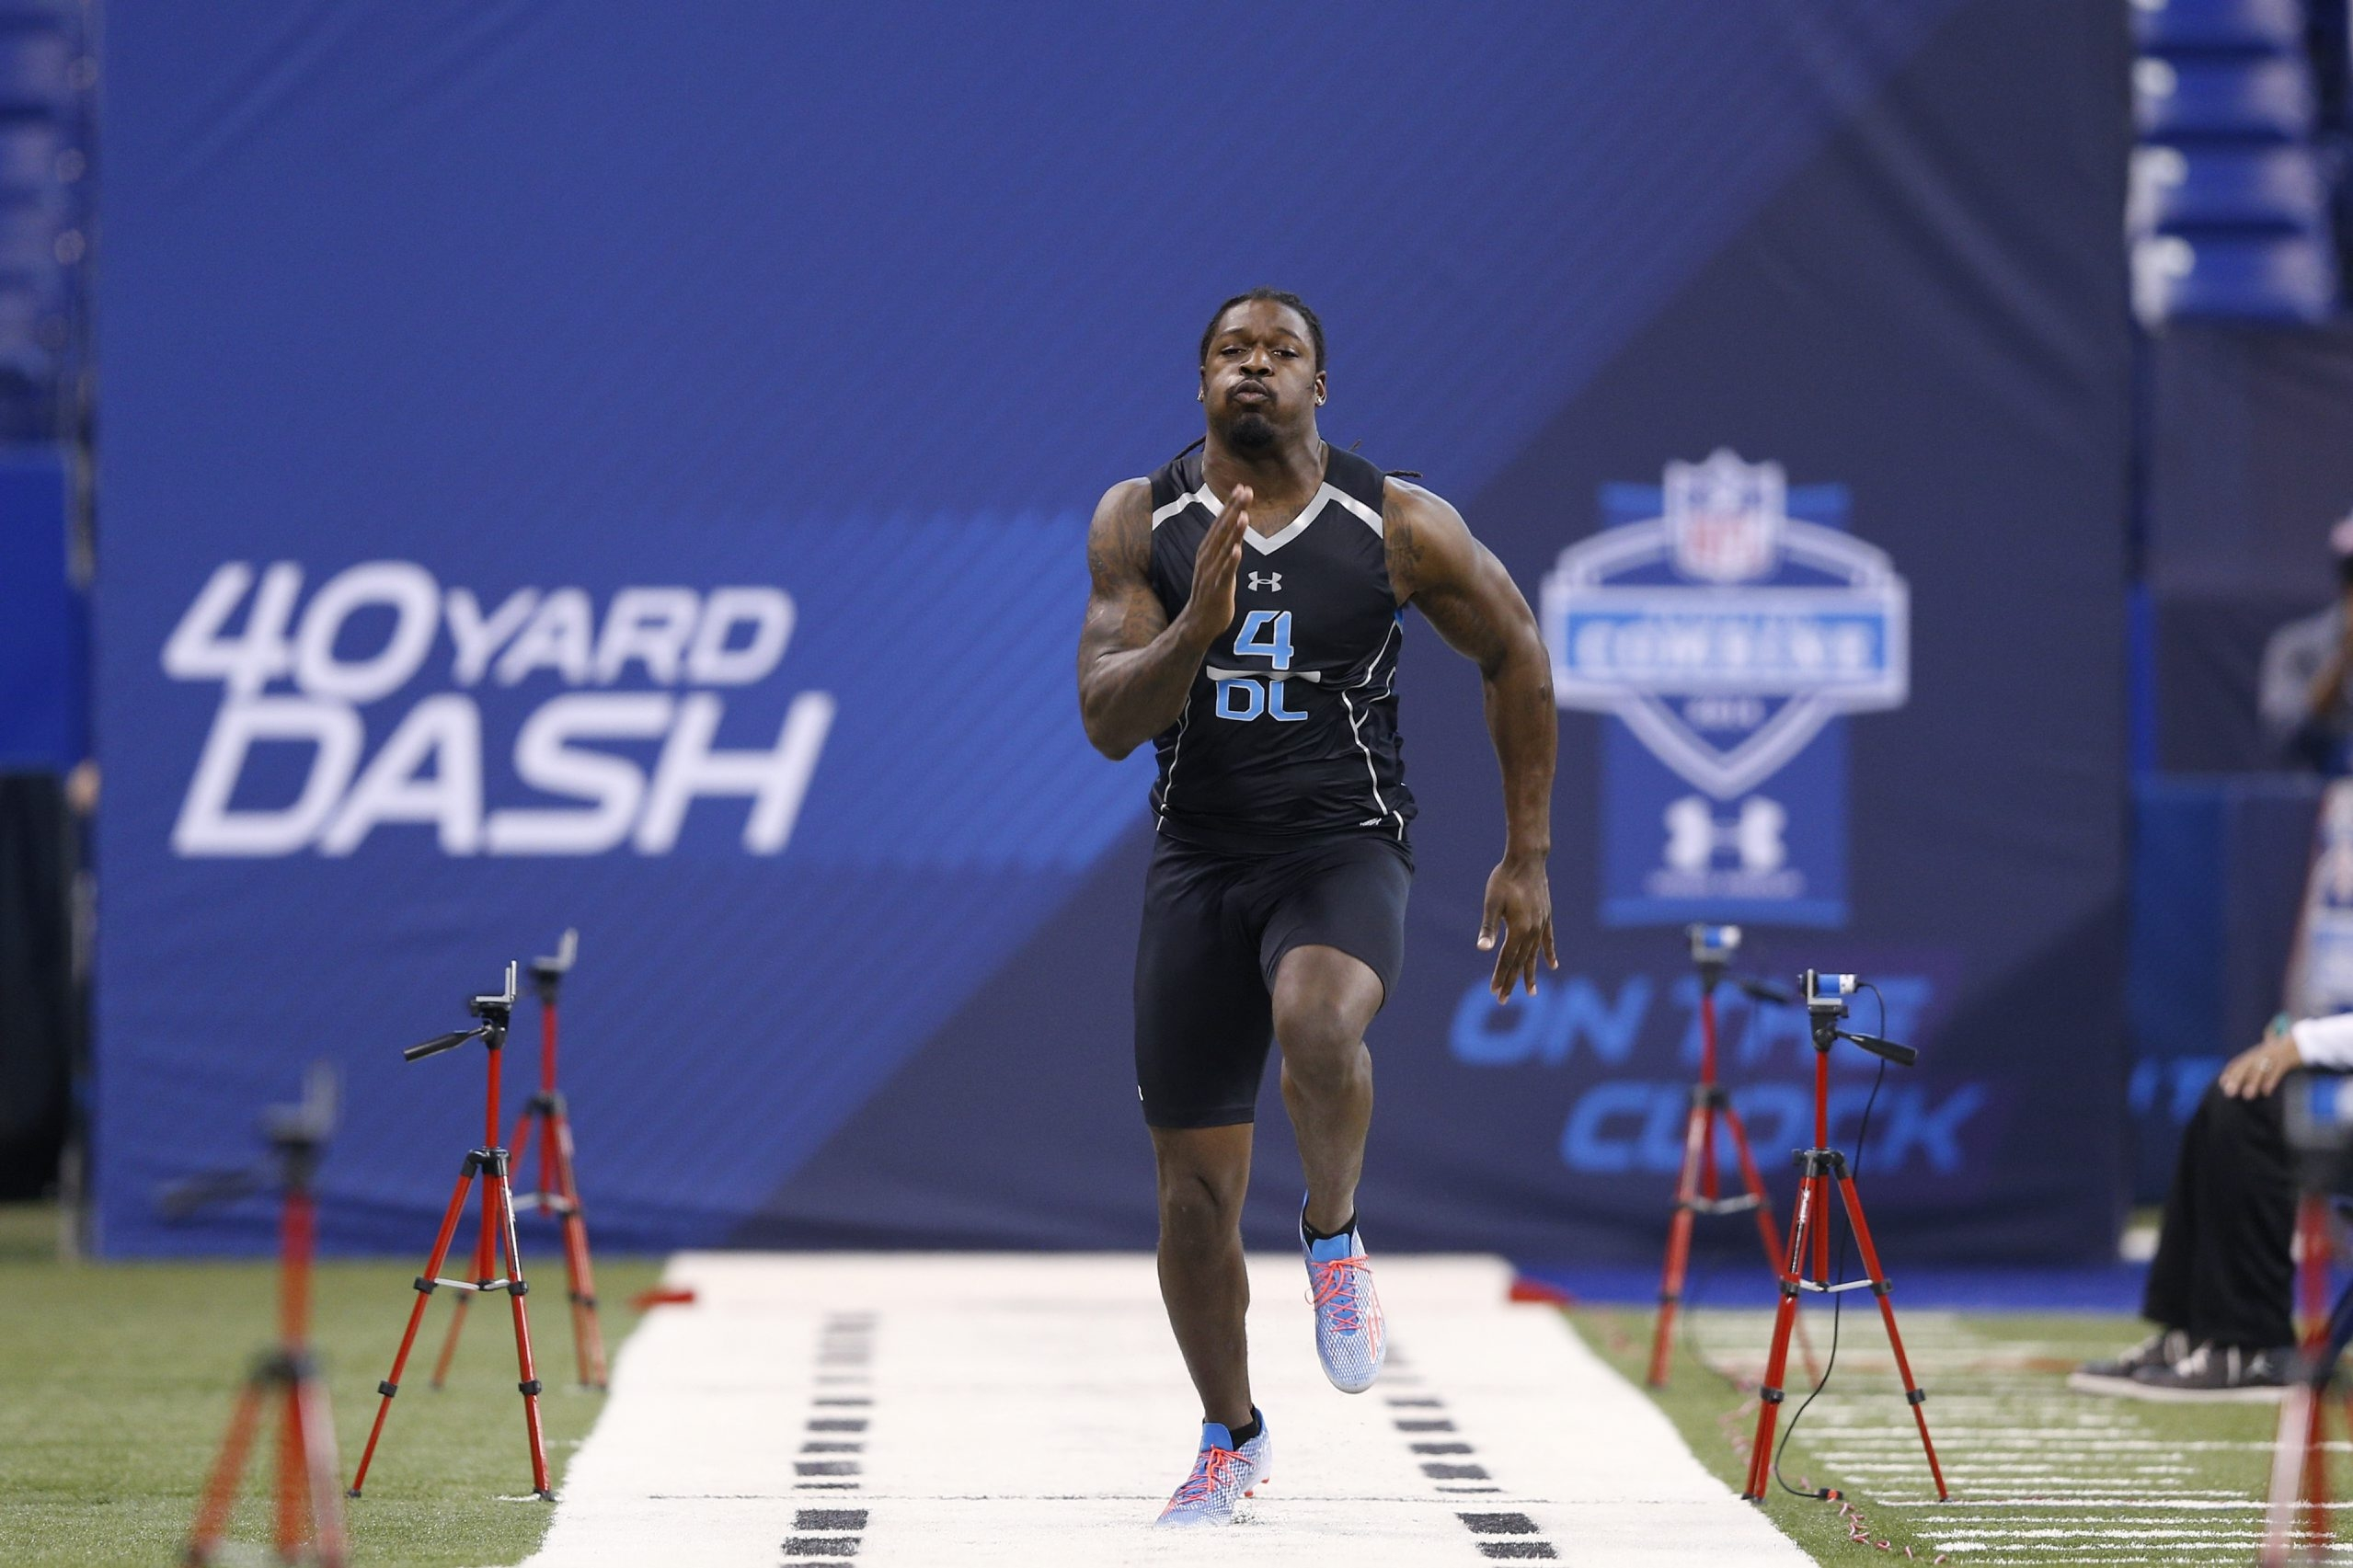 Former South Carolina defensive lineman Jadeveon Clowney has amazing speed for a man of his size.